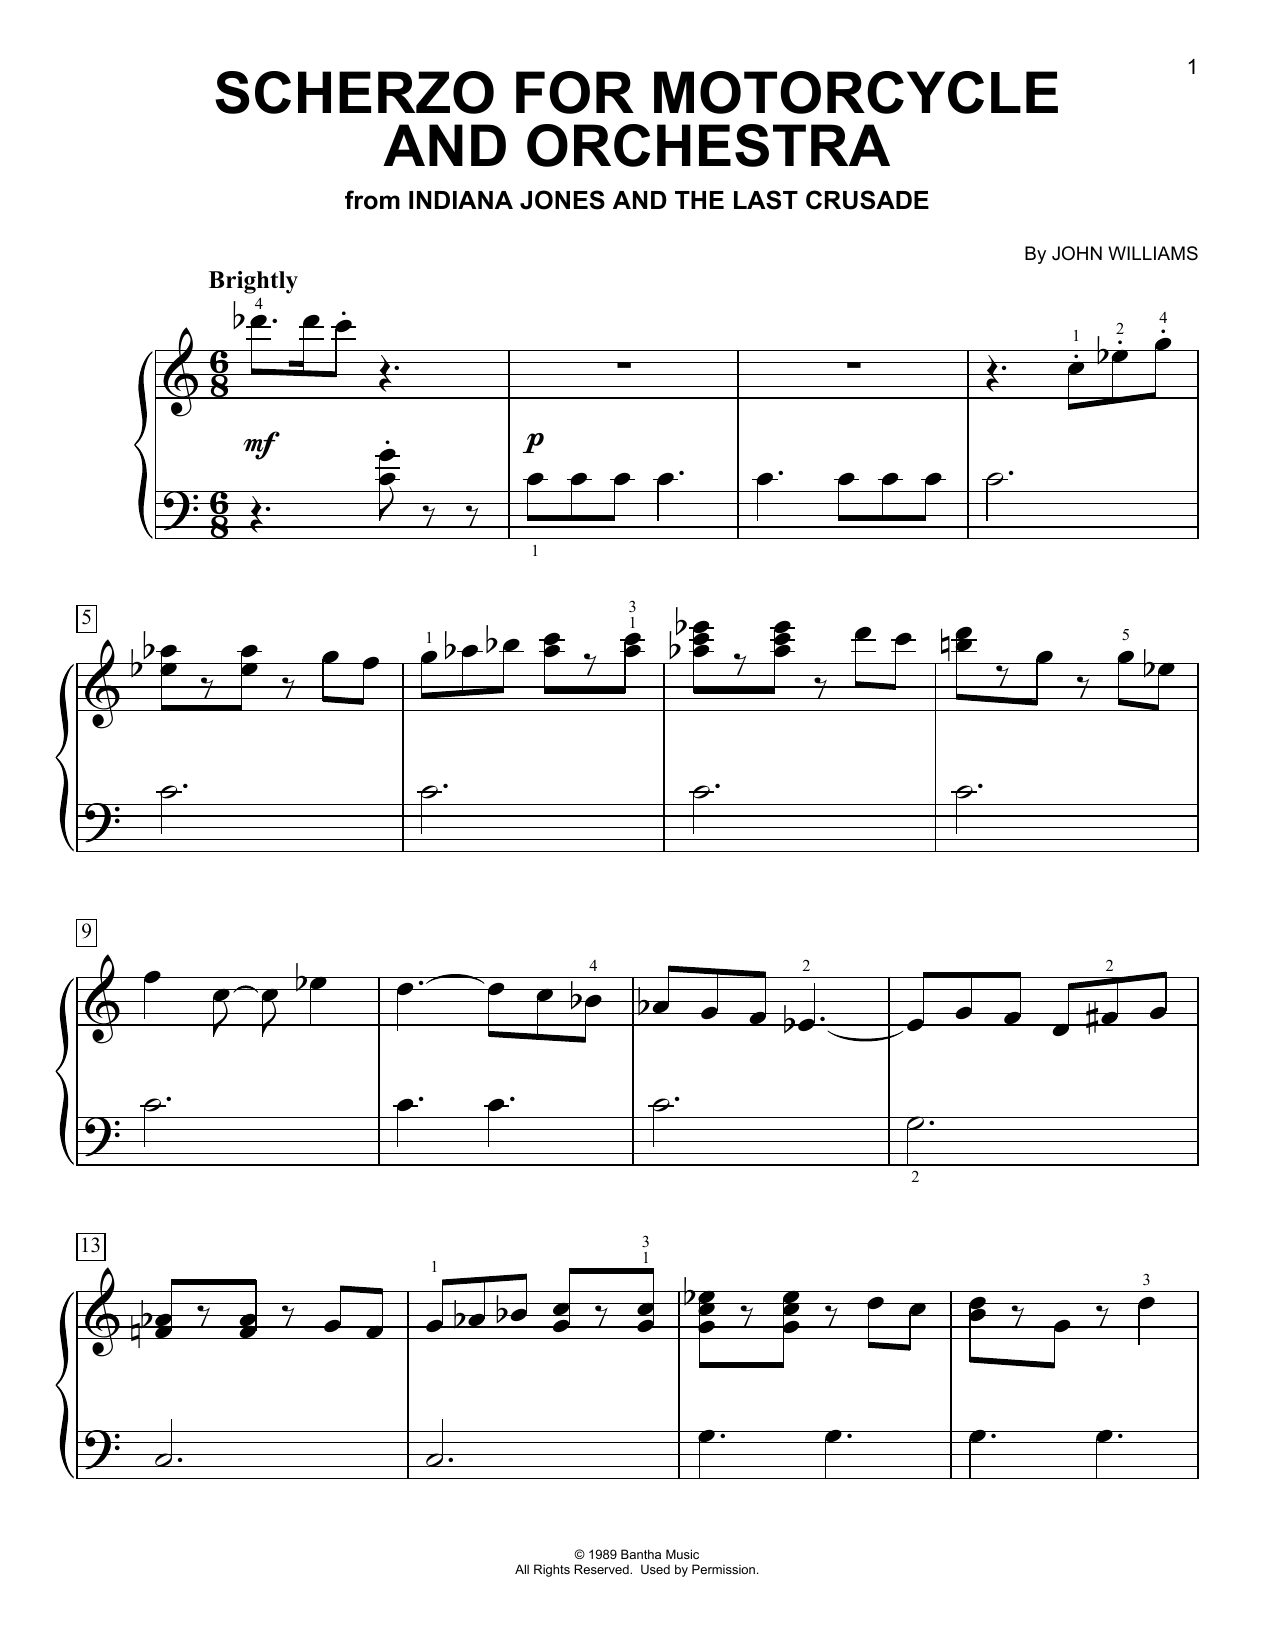 Scherzo For Motorcycle And Orchestra (from Indiana Jones) (Easy Piano)